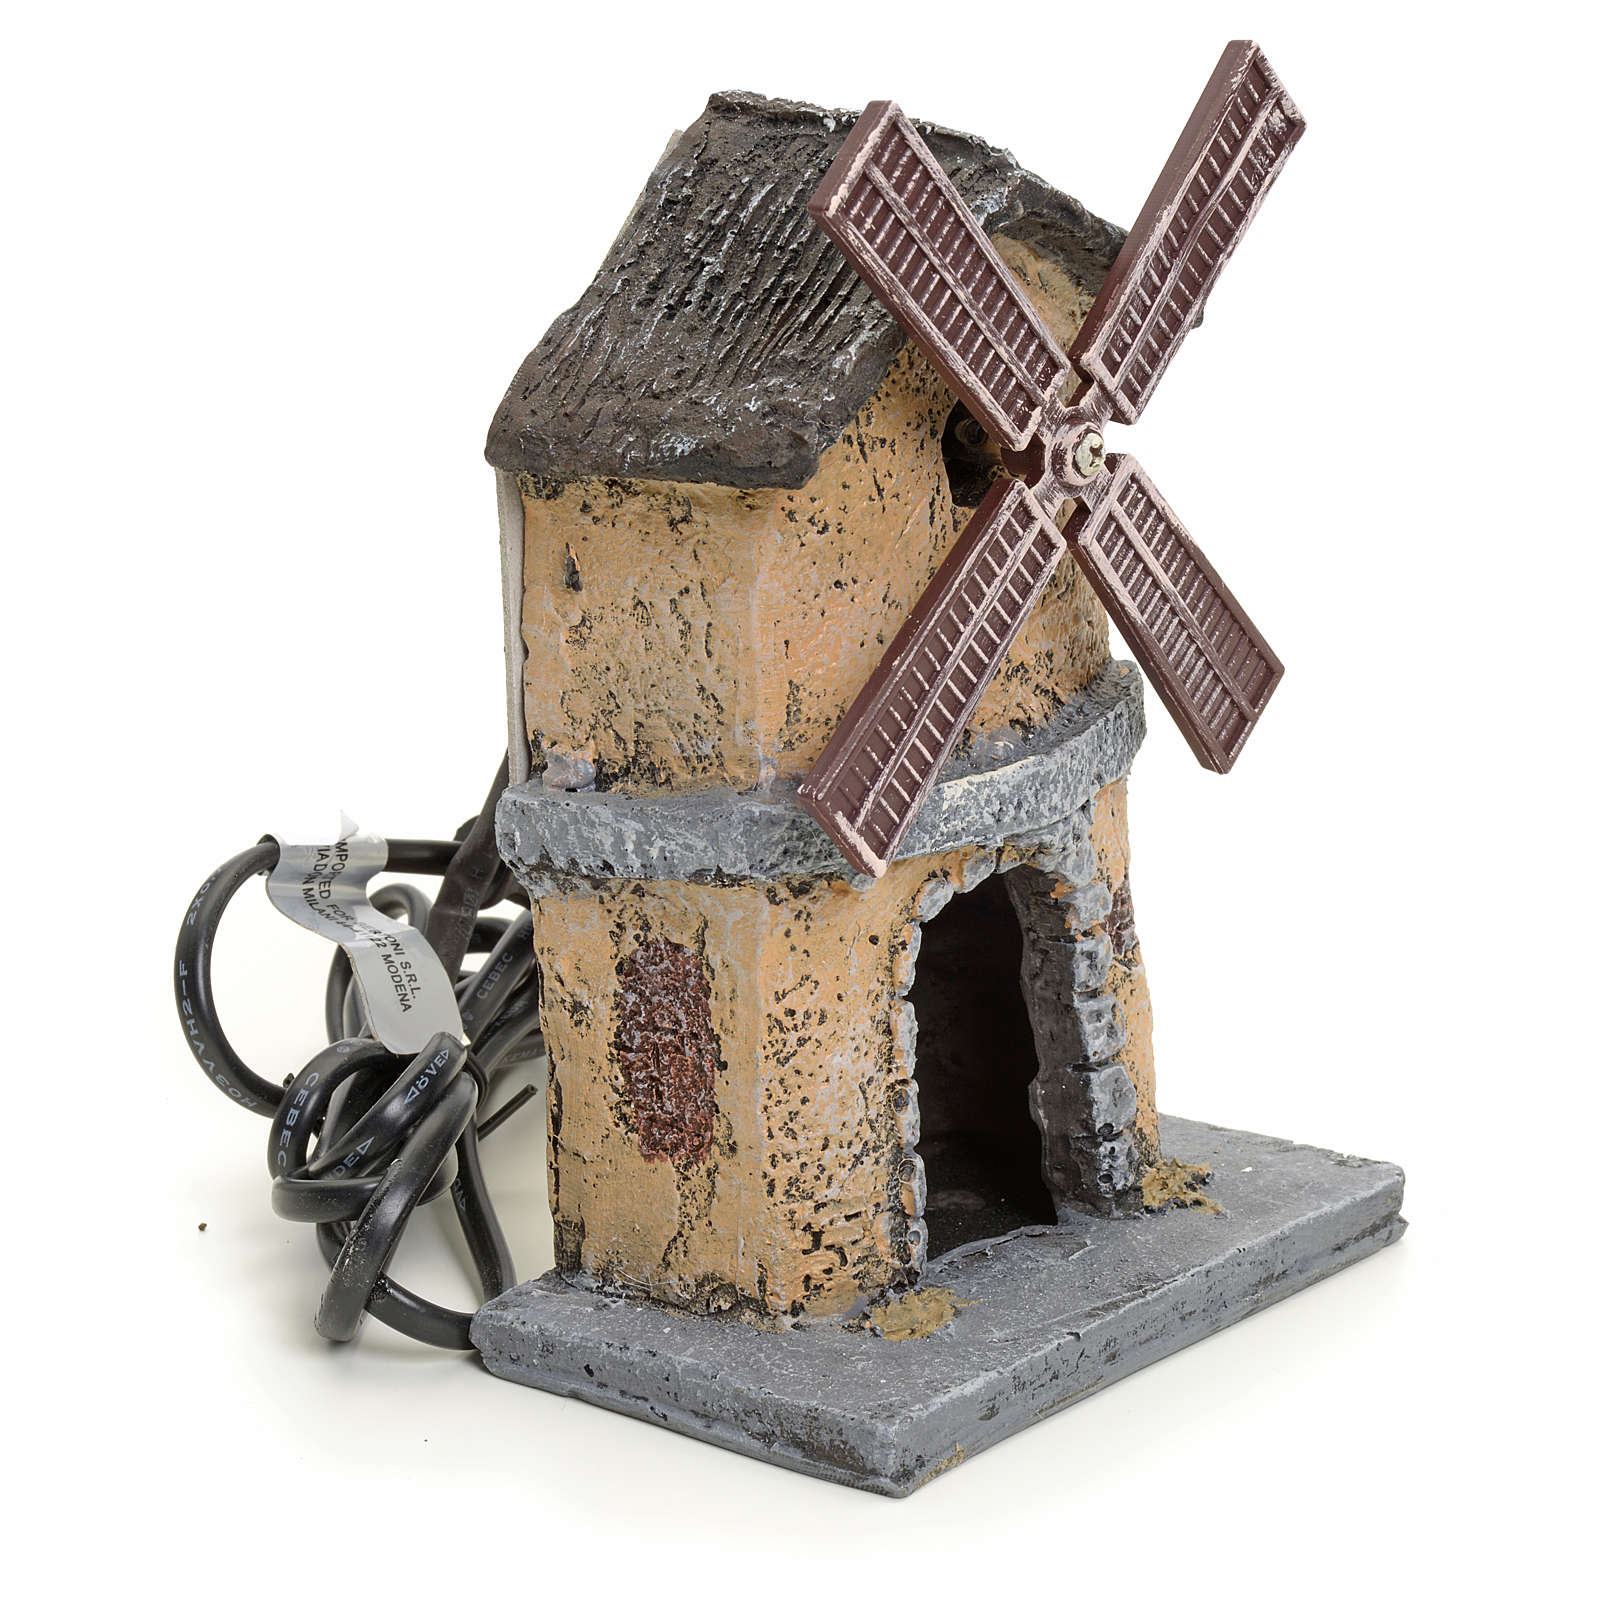 Nativity wind mill in resin 16x11x16cm 4